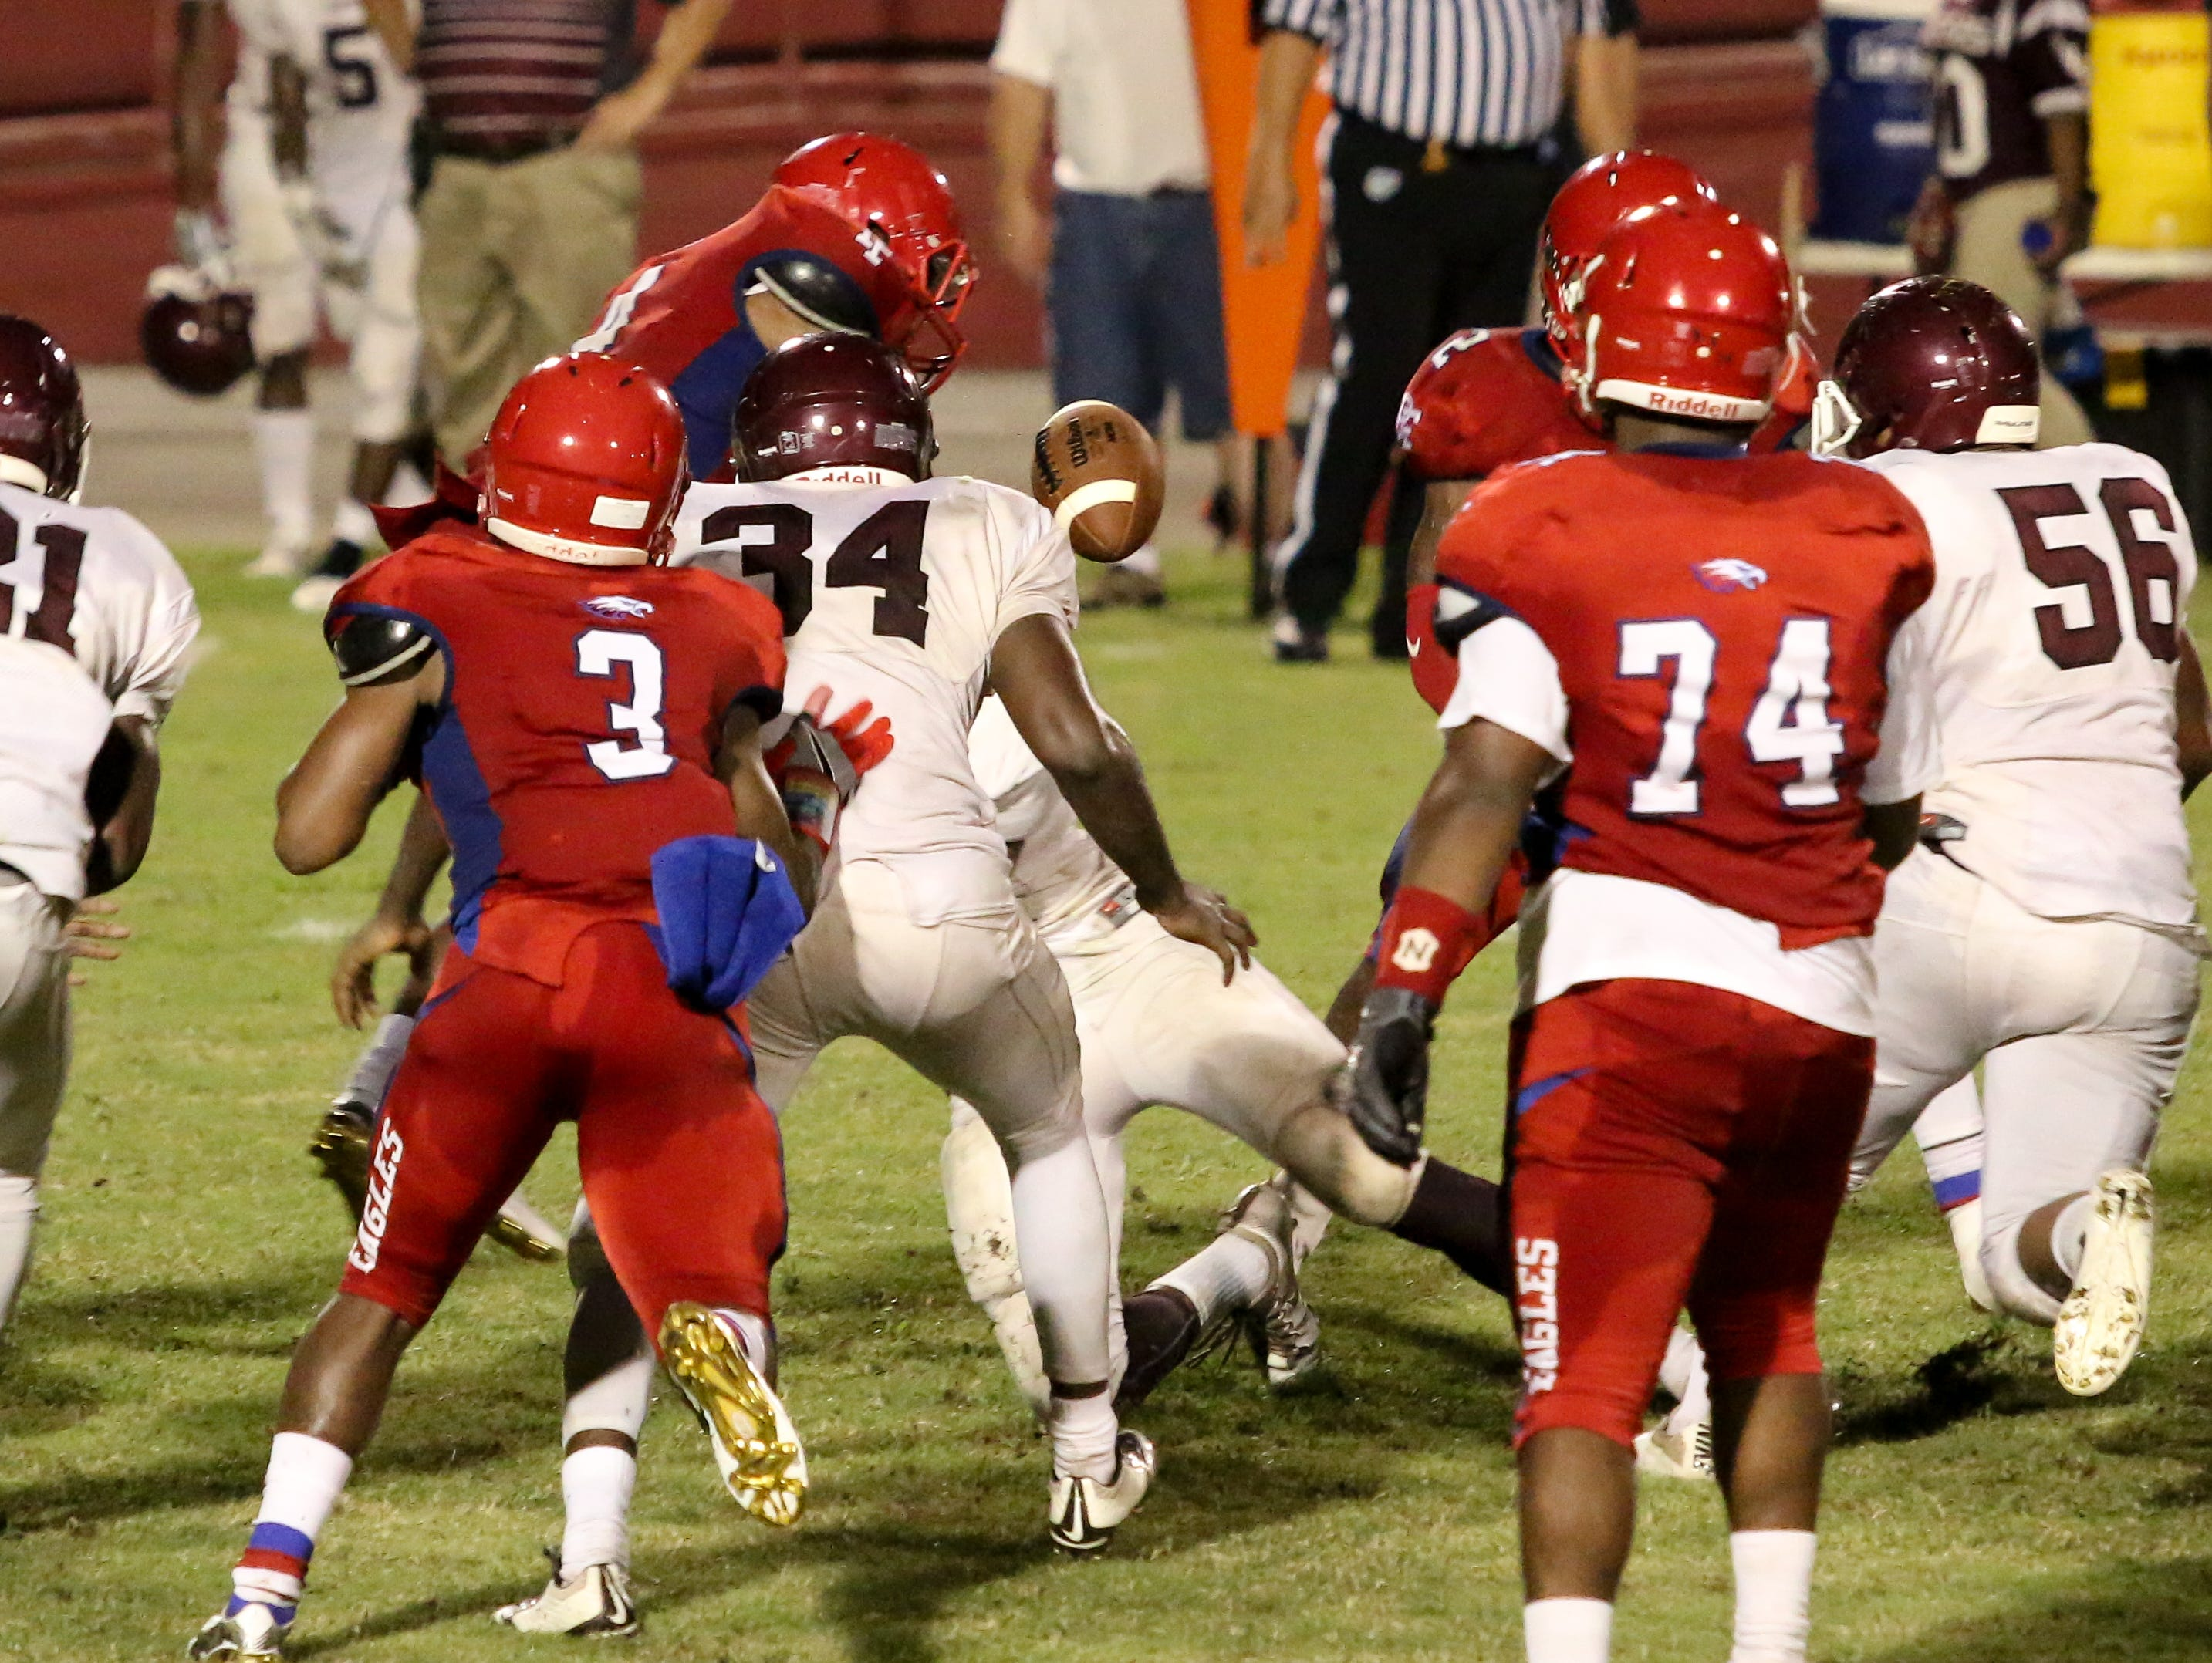 The ball popped out after Pine Forest's Ladarius Wiggins (4) was hit hard by a Pensacola defender Friday night at Pine Forest High School.